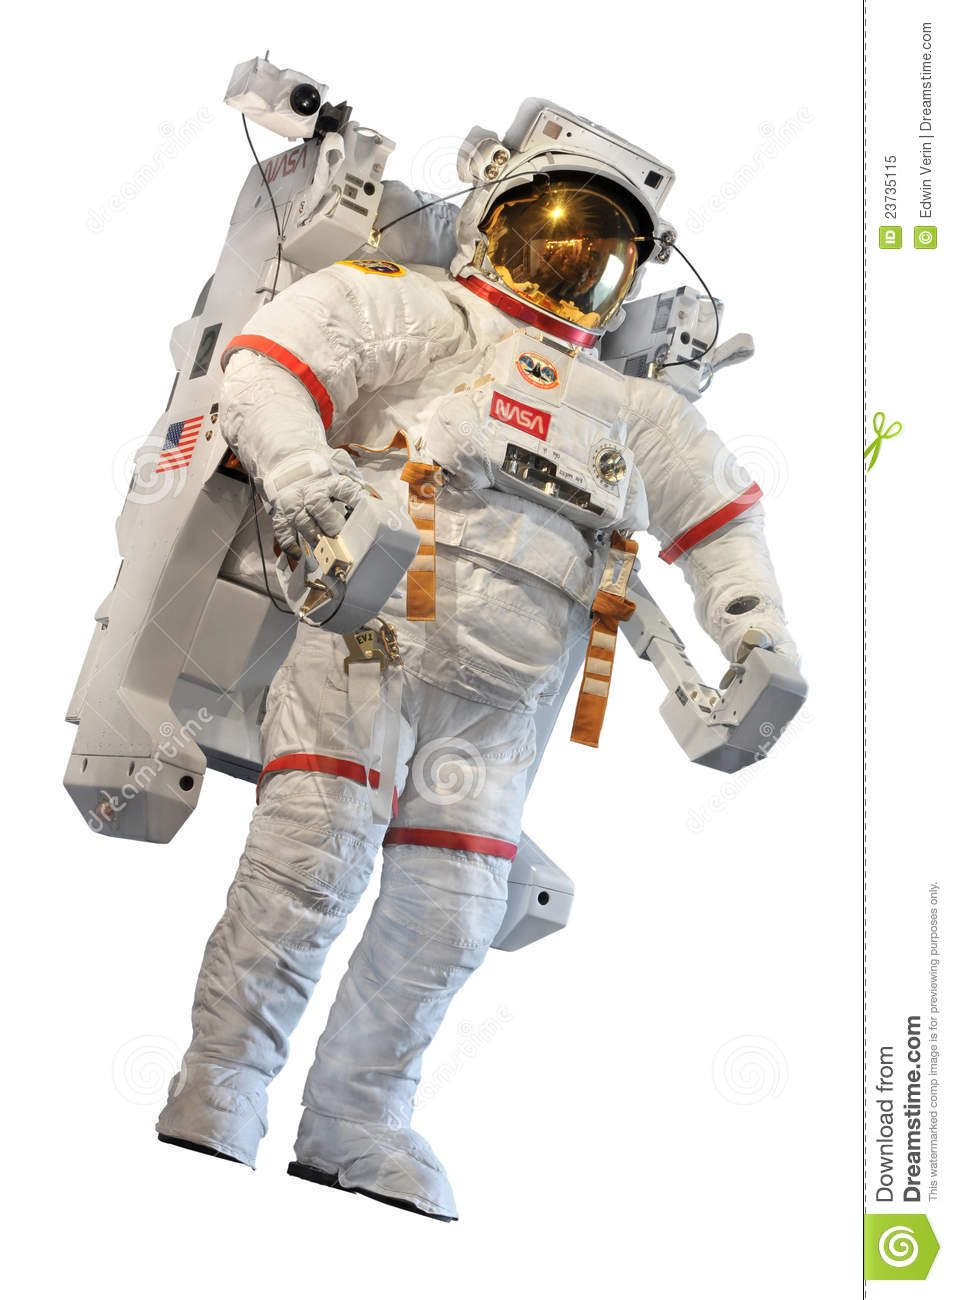 nasa space suit material - photo #37